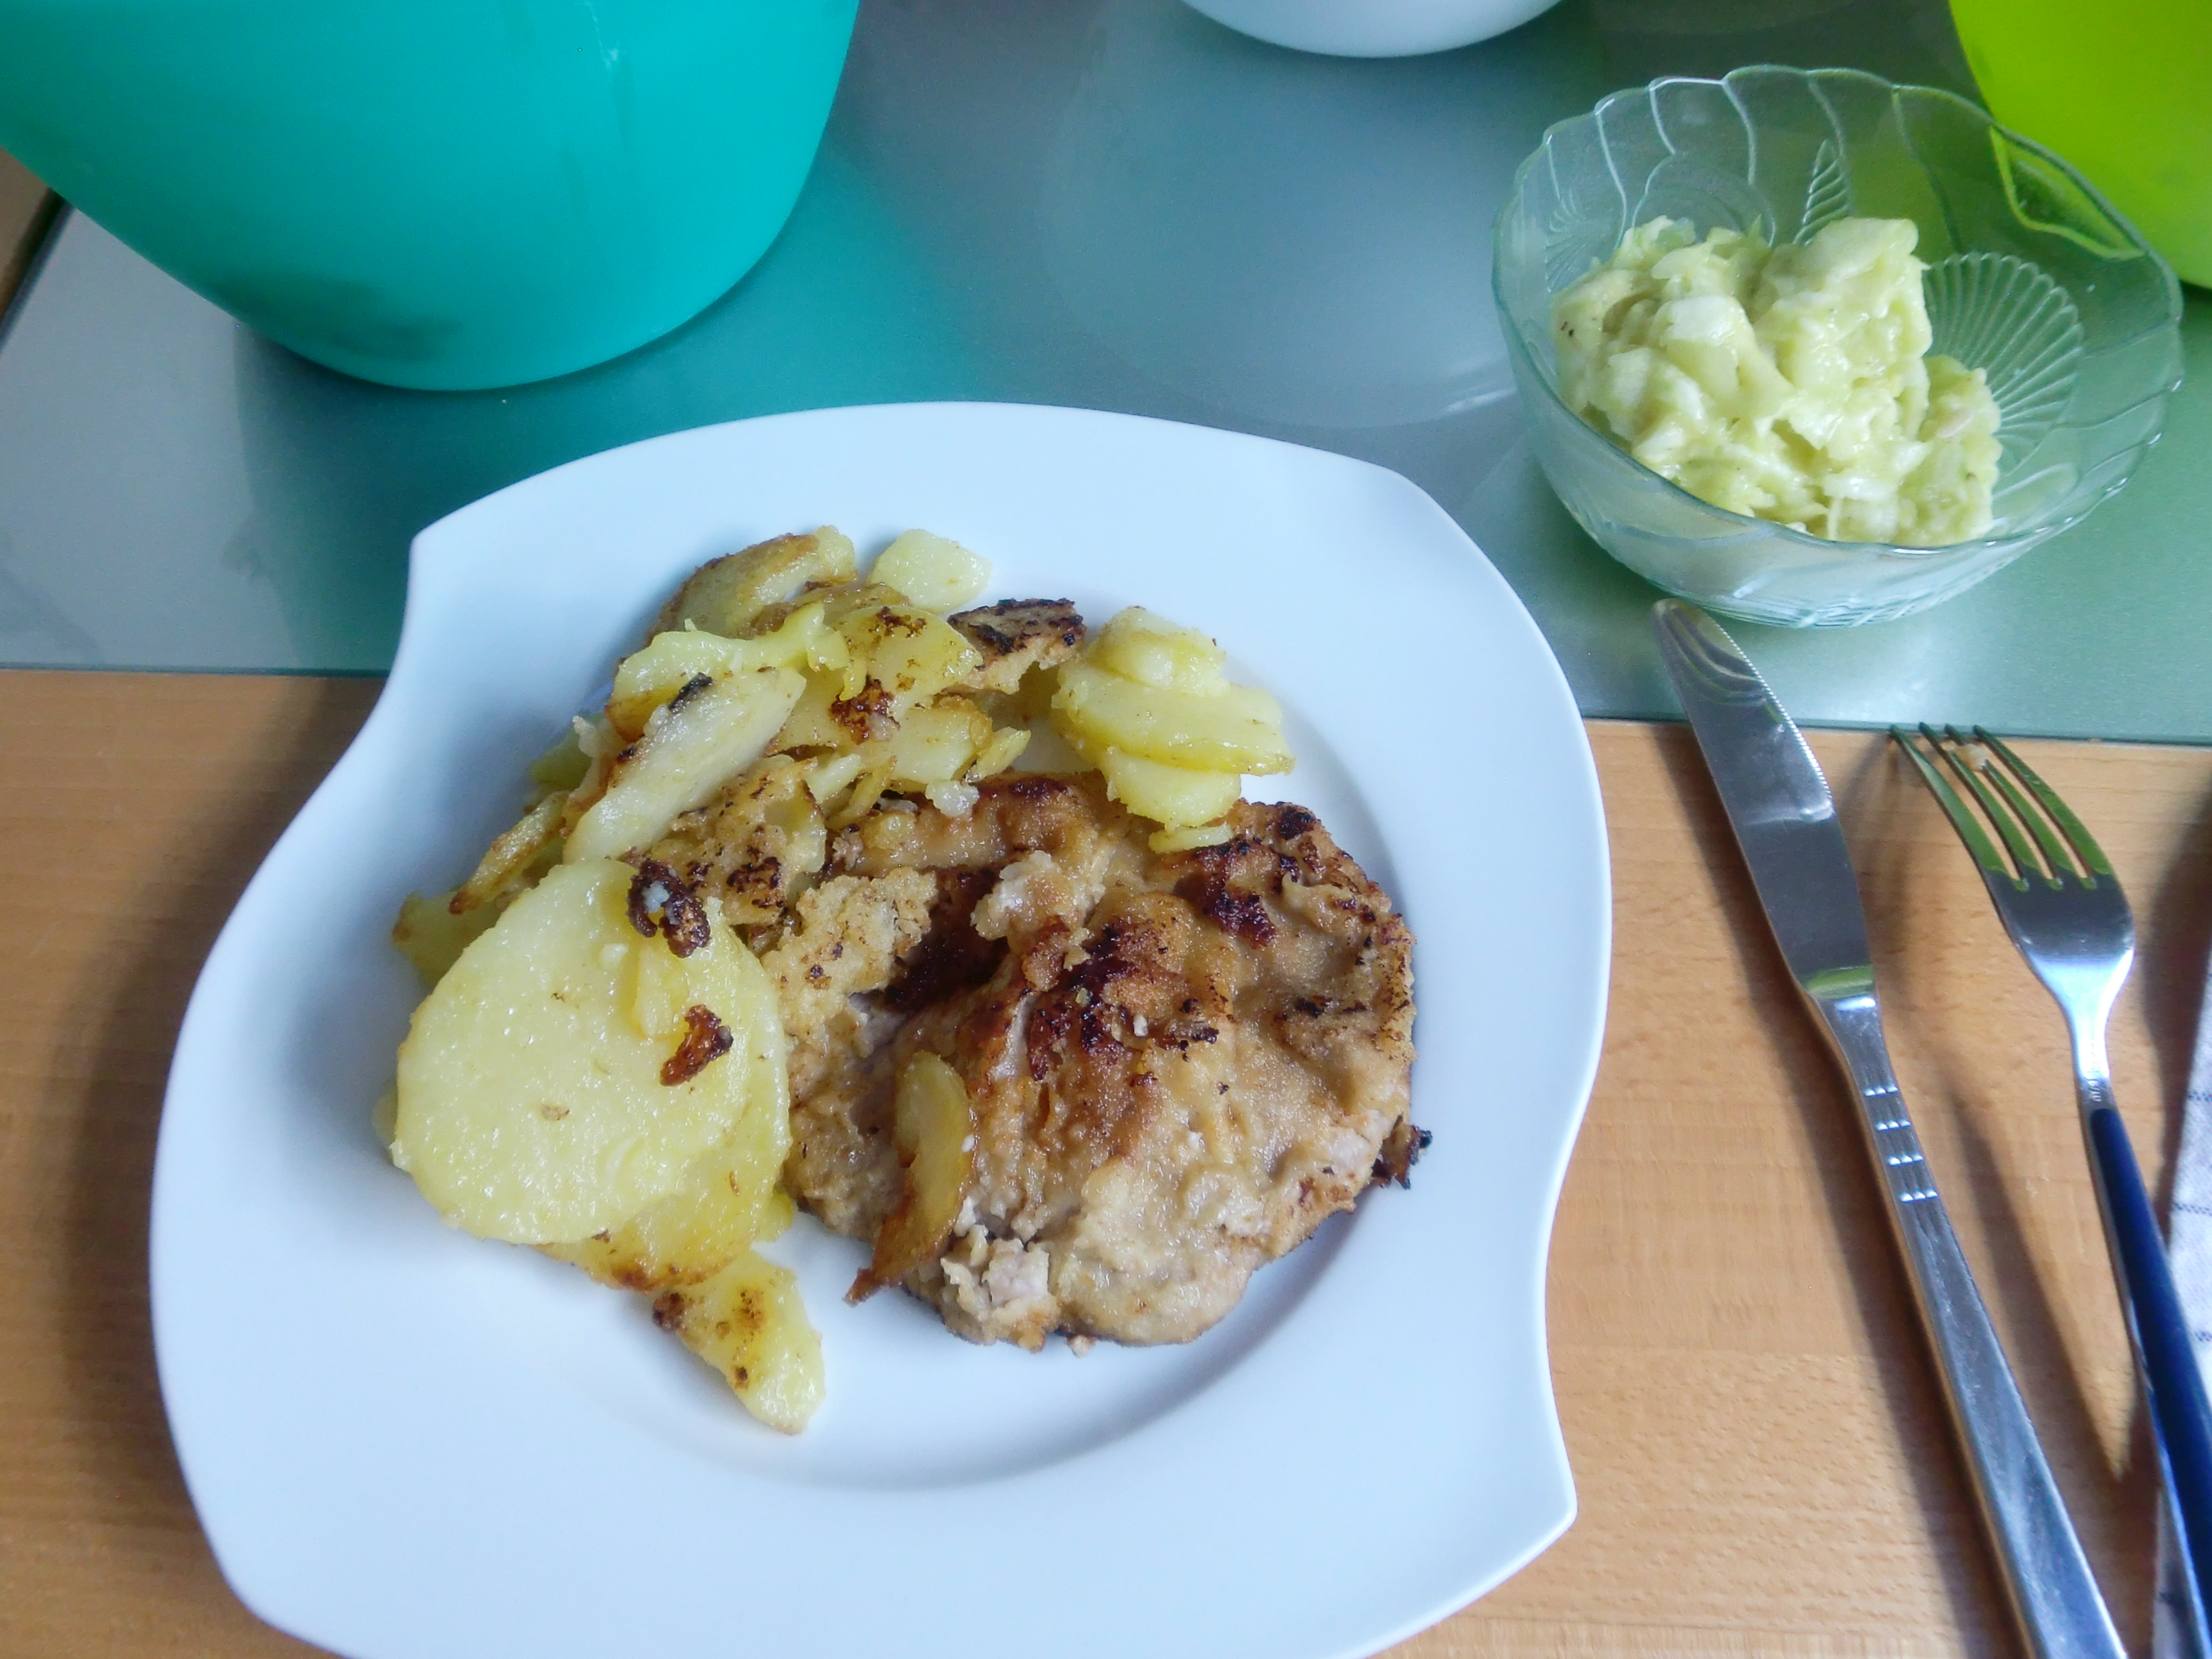 Schnitzel, chipped potatoes and cucumber salad